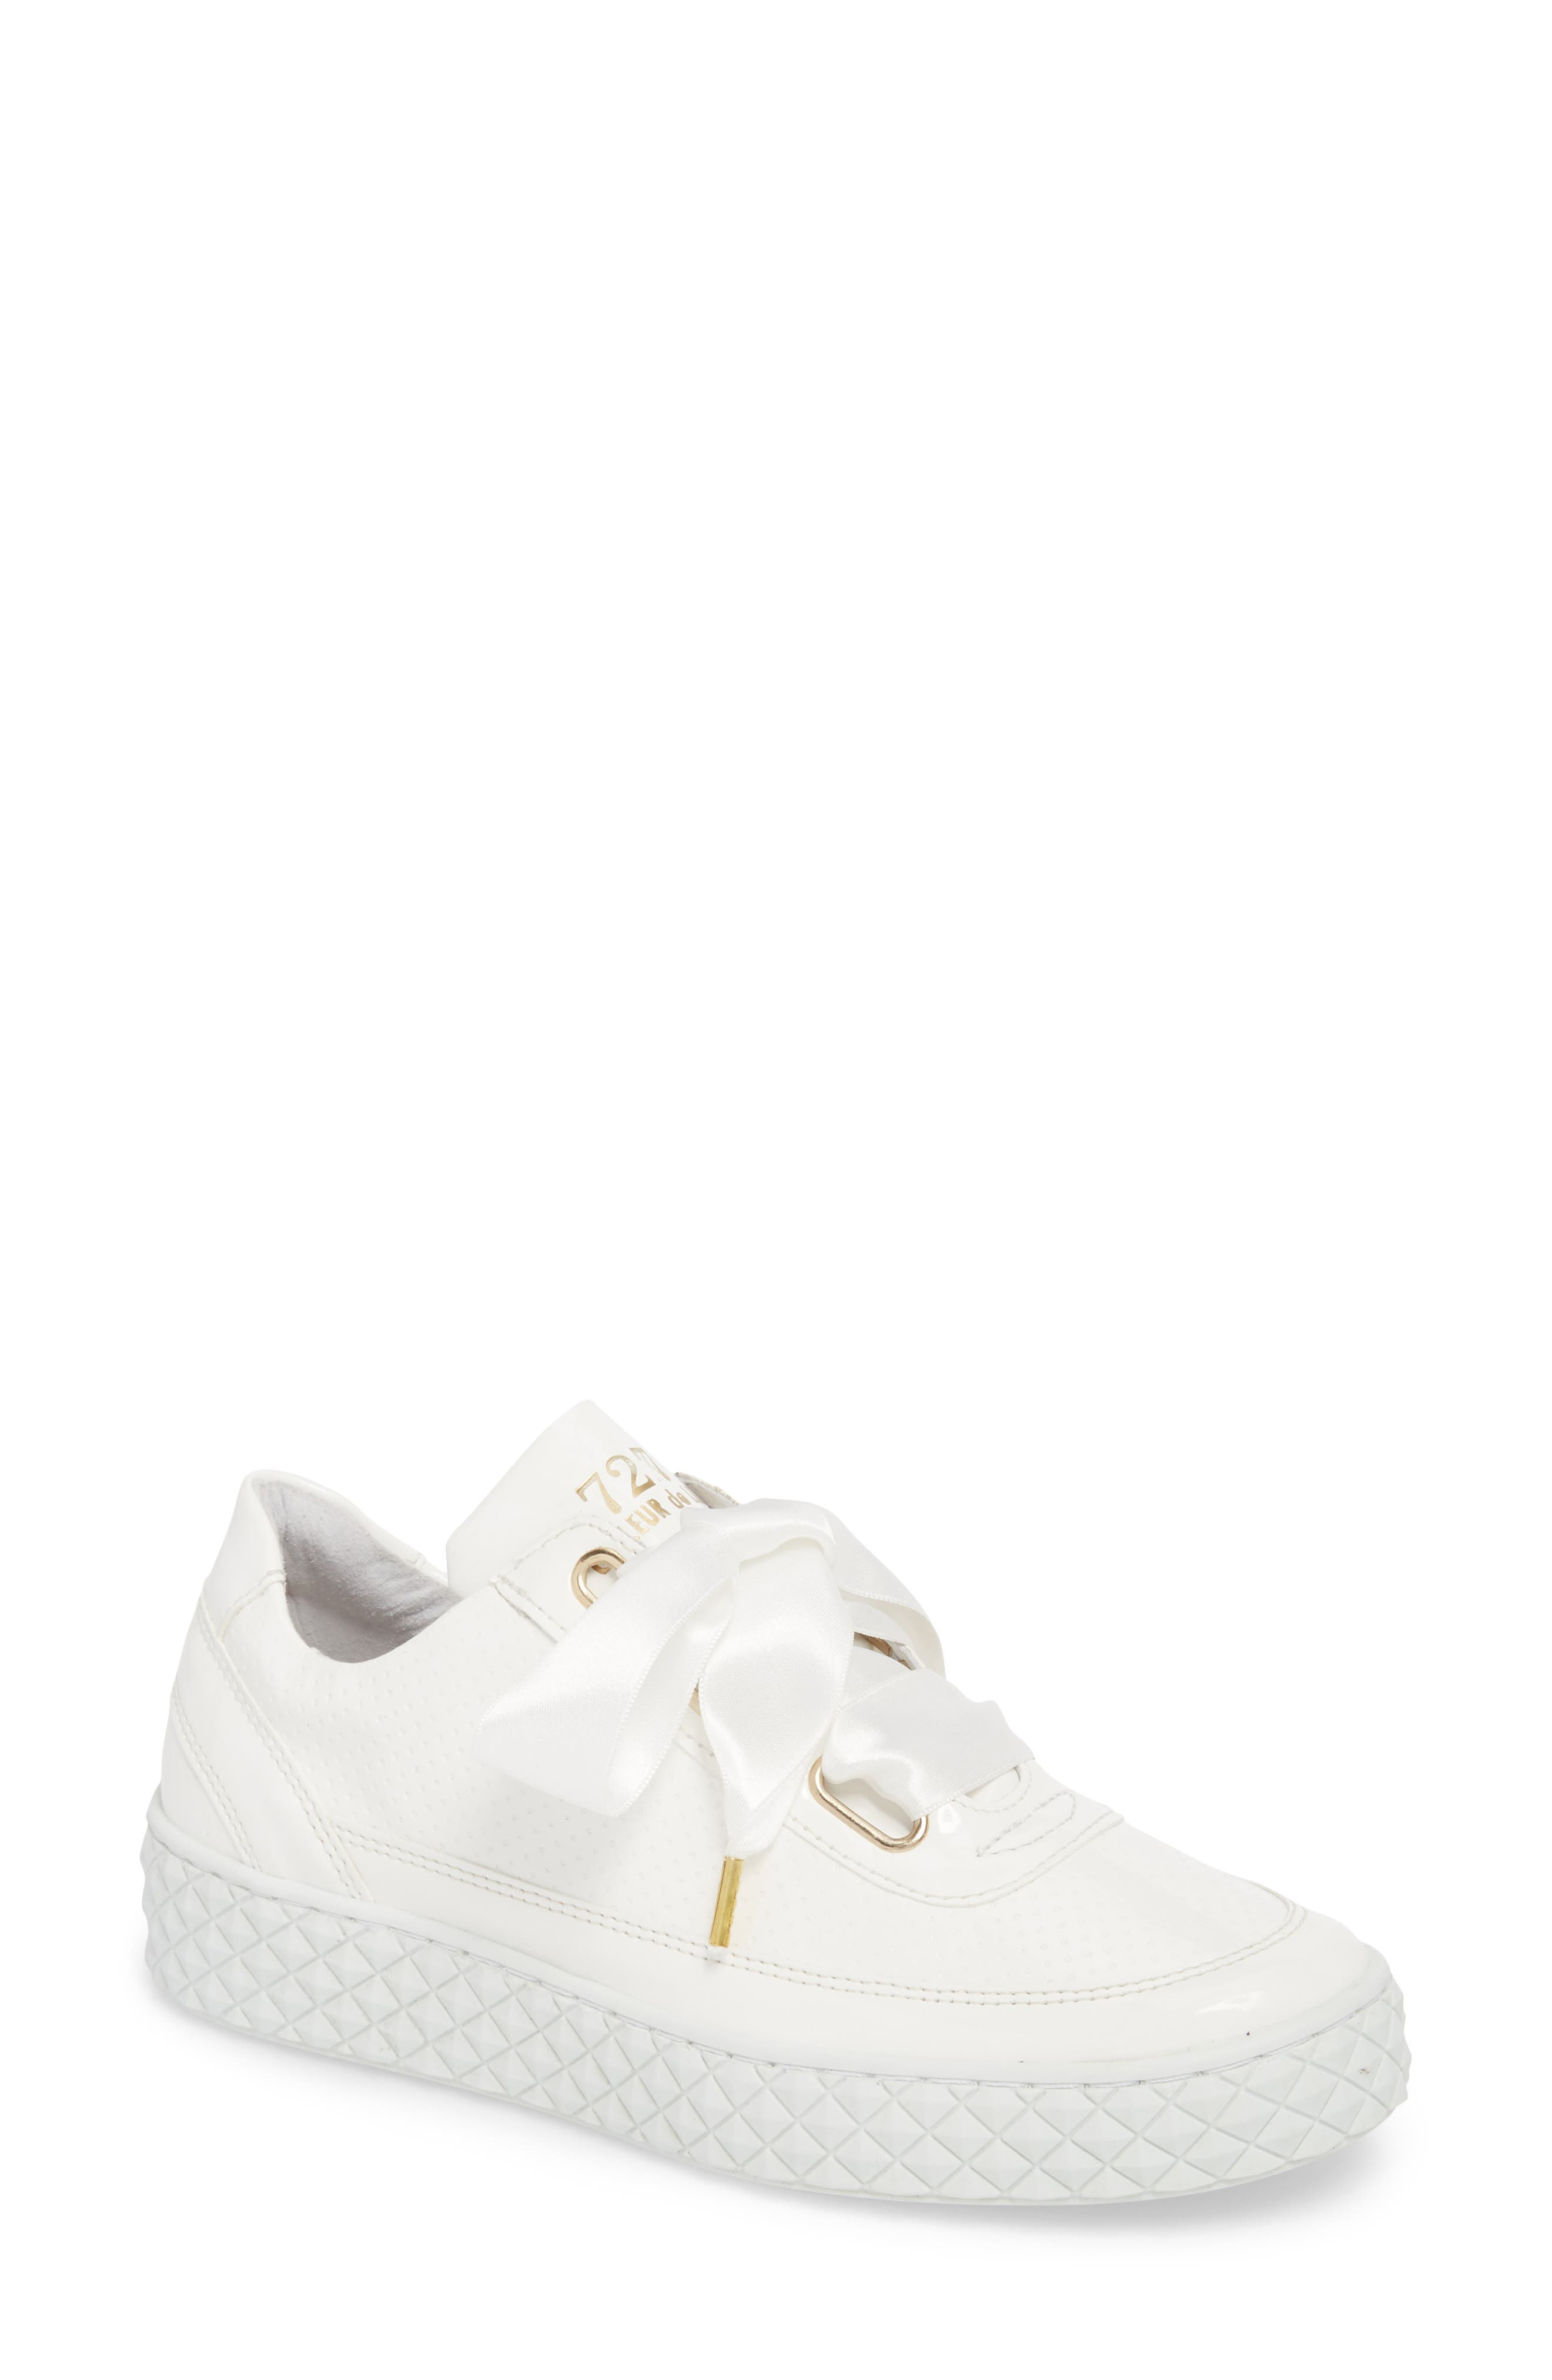 Montreal II Sneaker,                         Main,                         color, White Leather